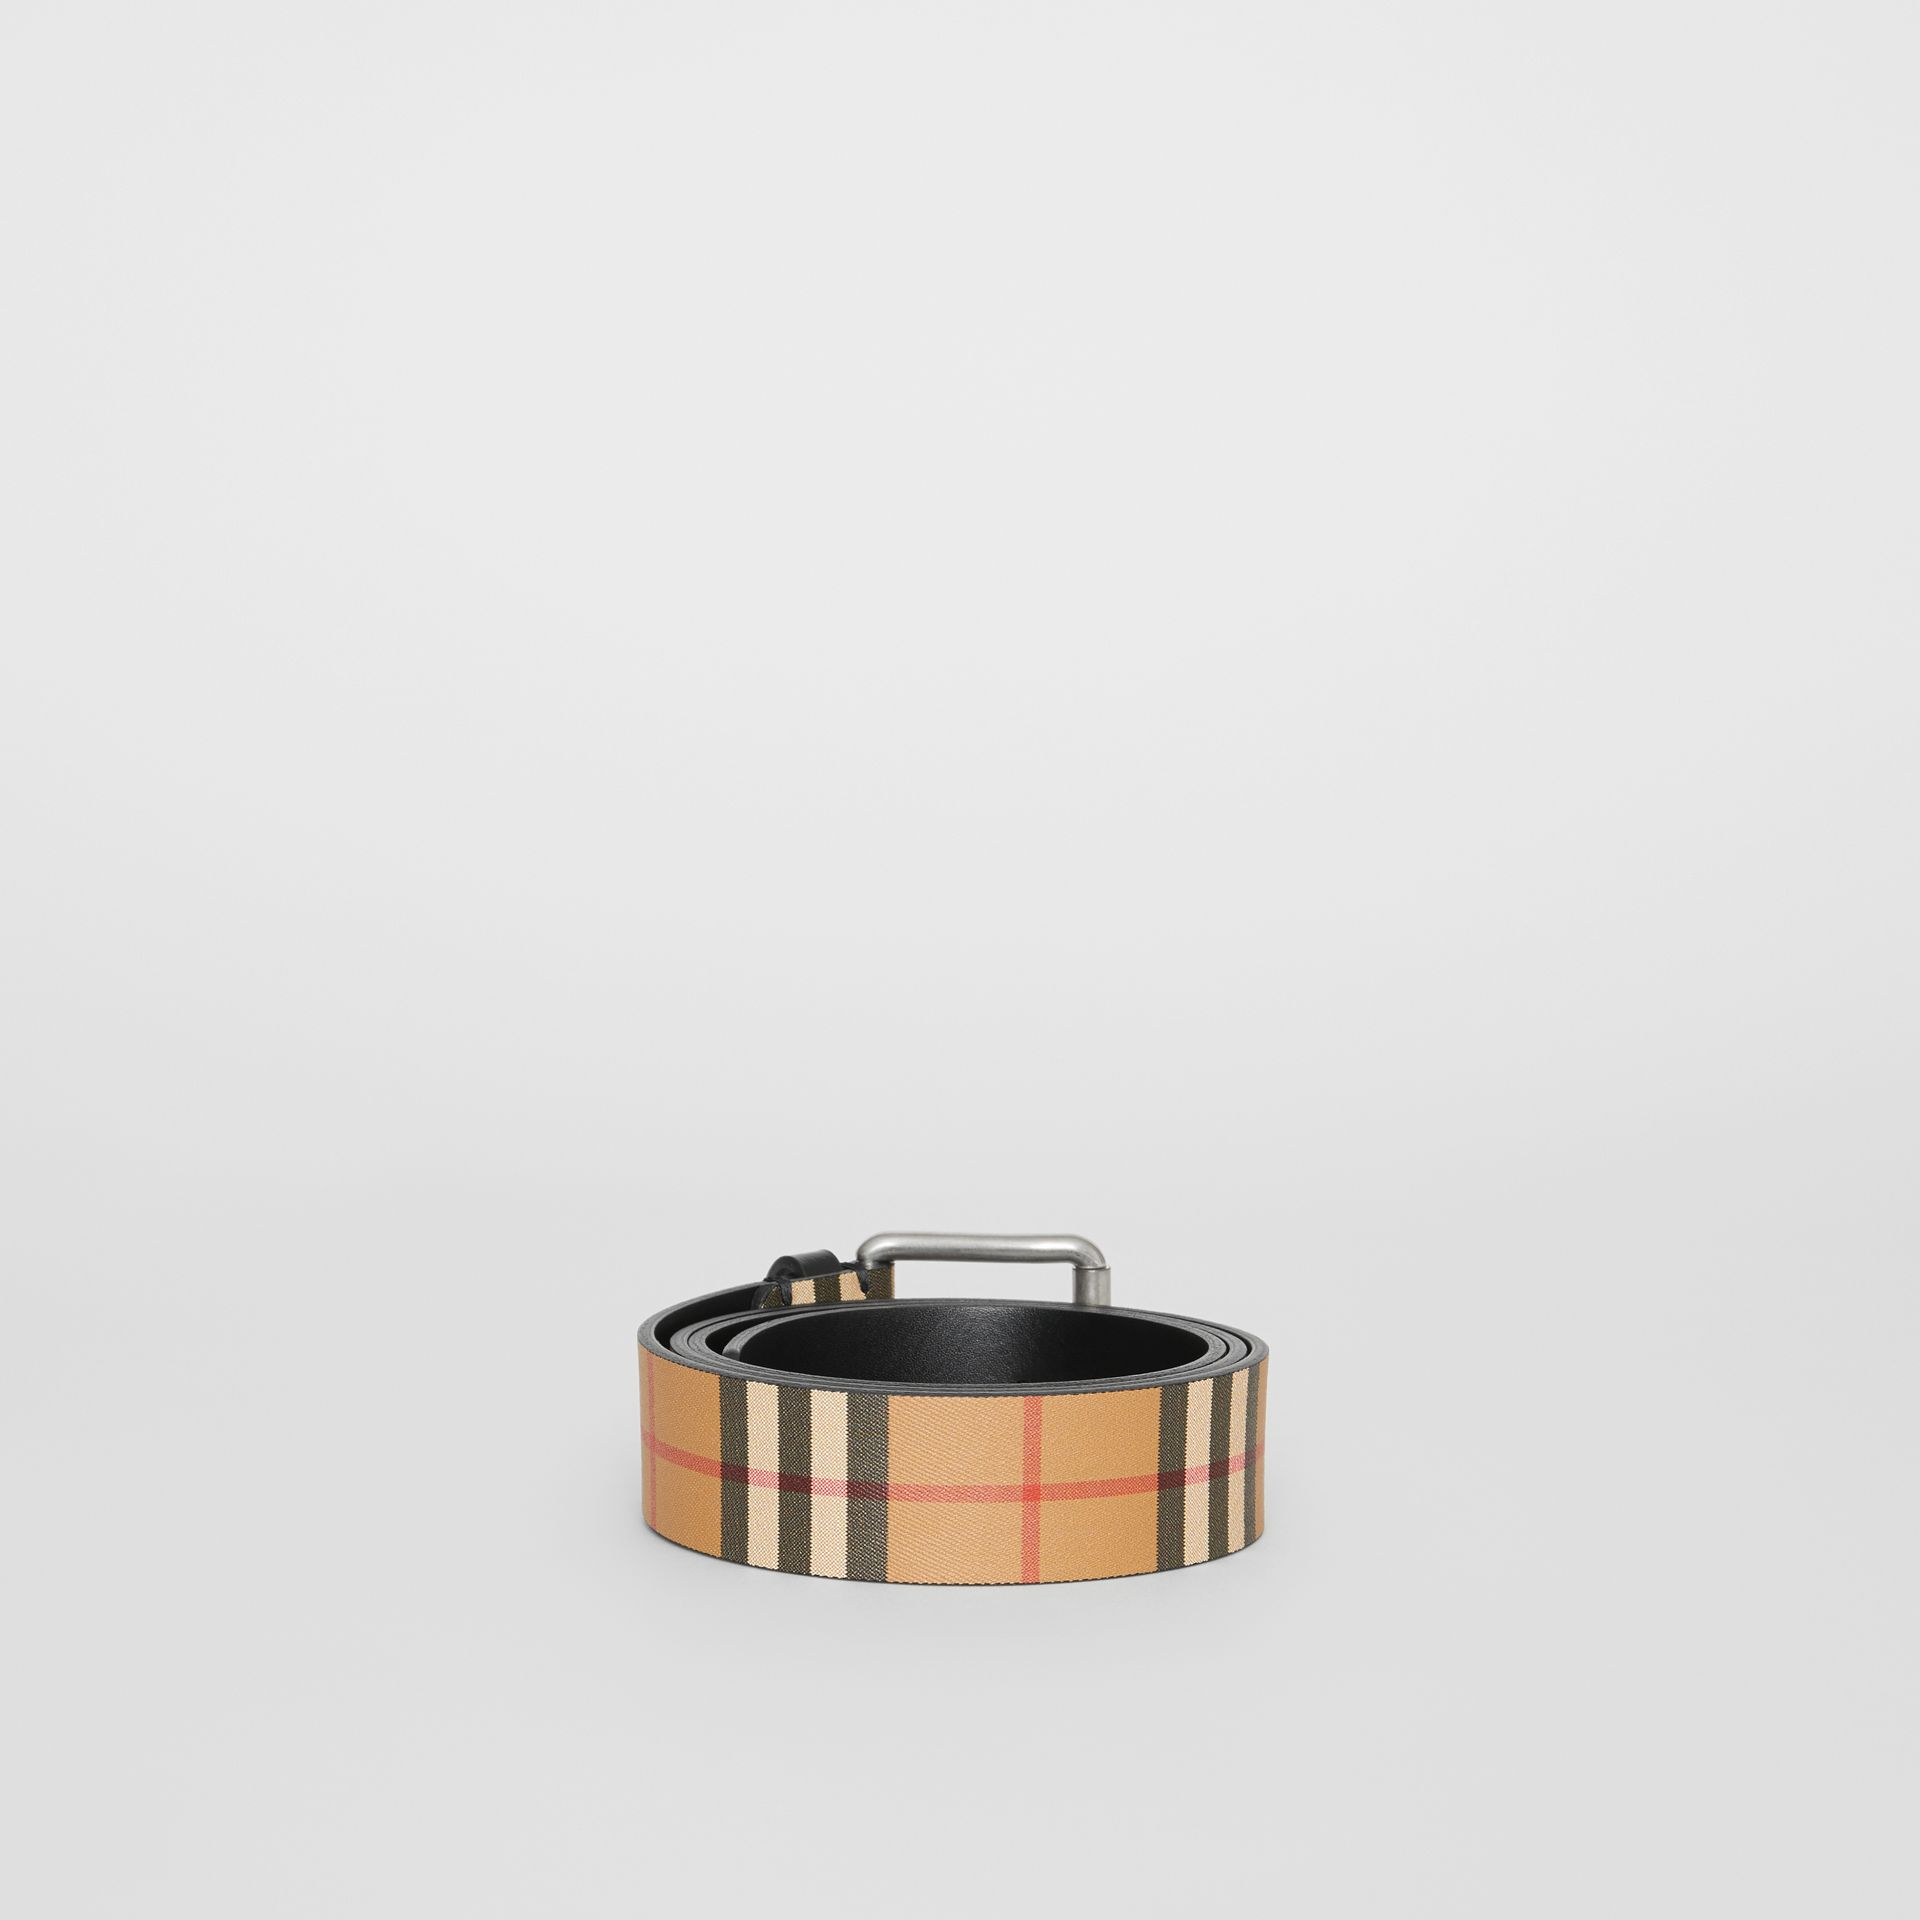 Vintage Check Leather Belt in Black - Men | Burberry - gallery image 4